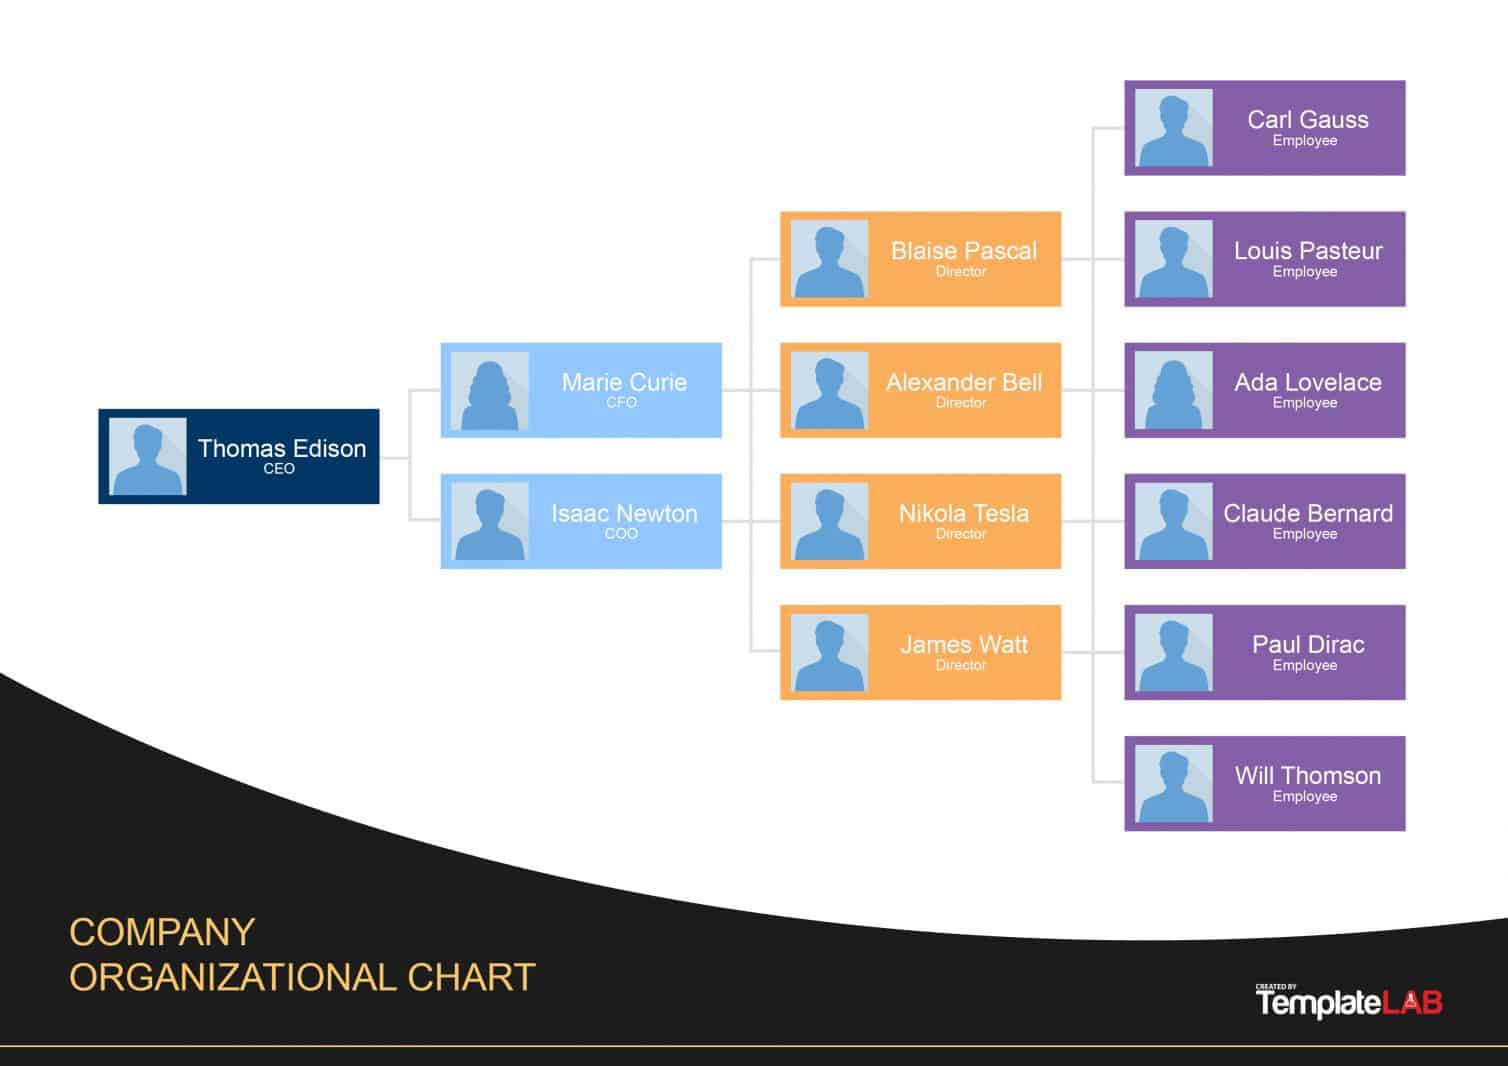 40 Organizational Chart Templates (Word, Excel, Powerpoint) Regarding Organization Chart Template Word